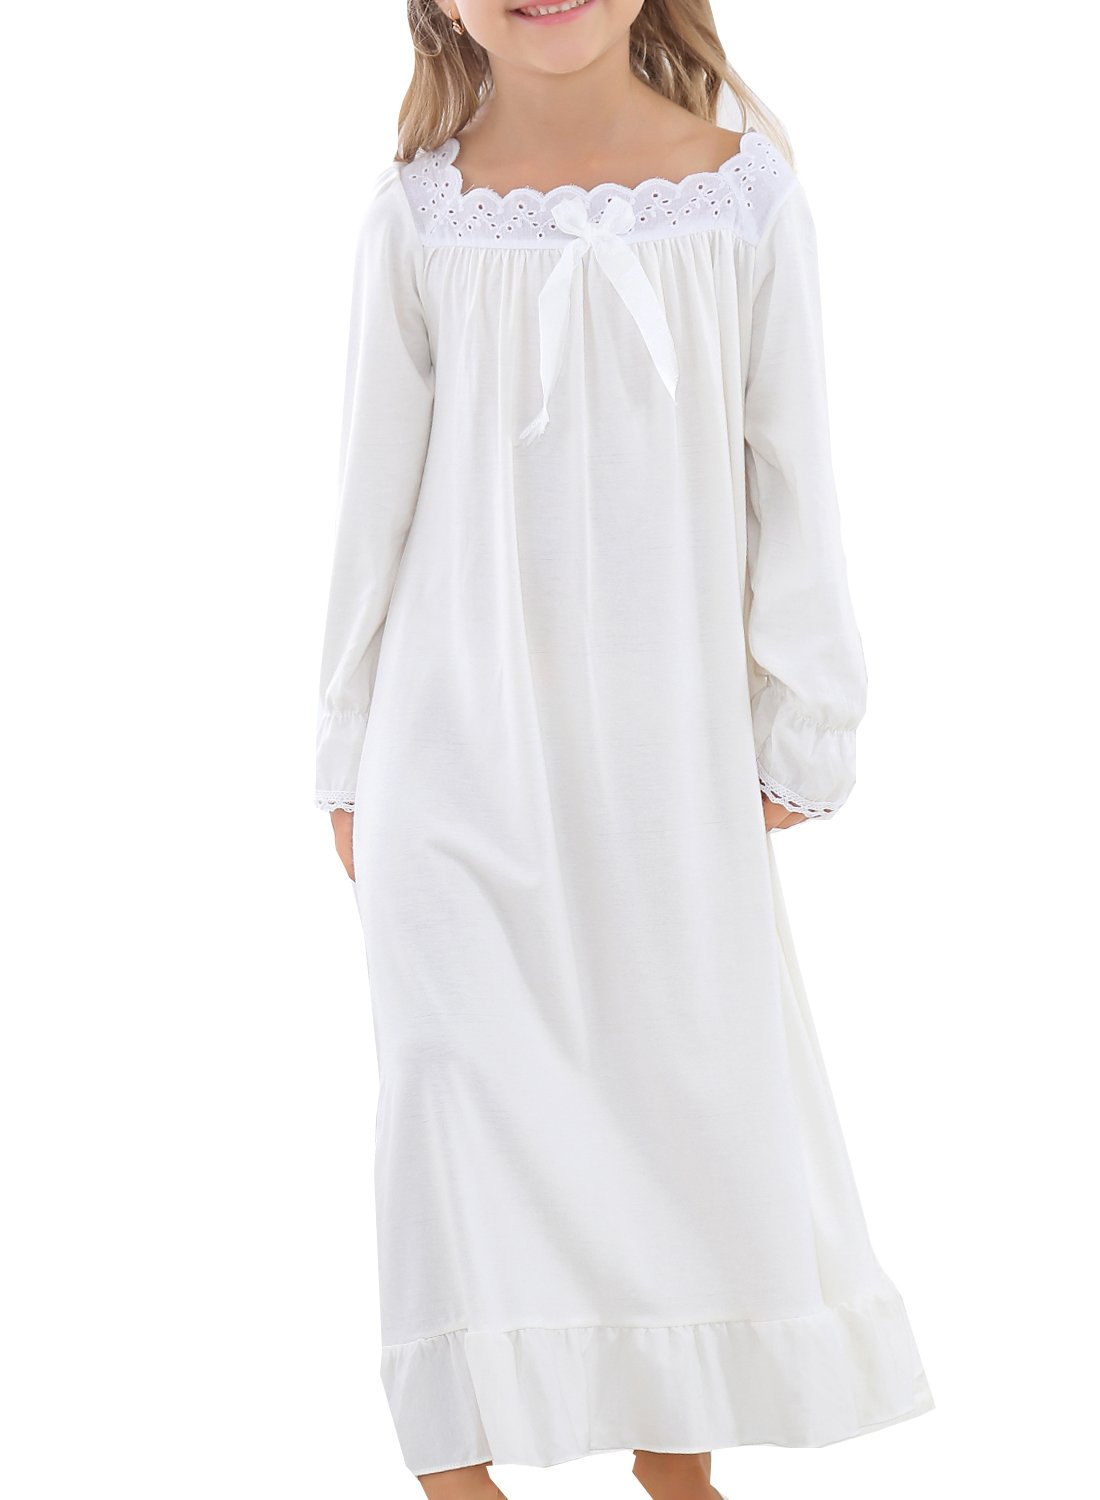 Lovely Girls Princess Nightgown Soft Cotton Sleepwear Kids 3-12 Years